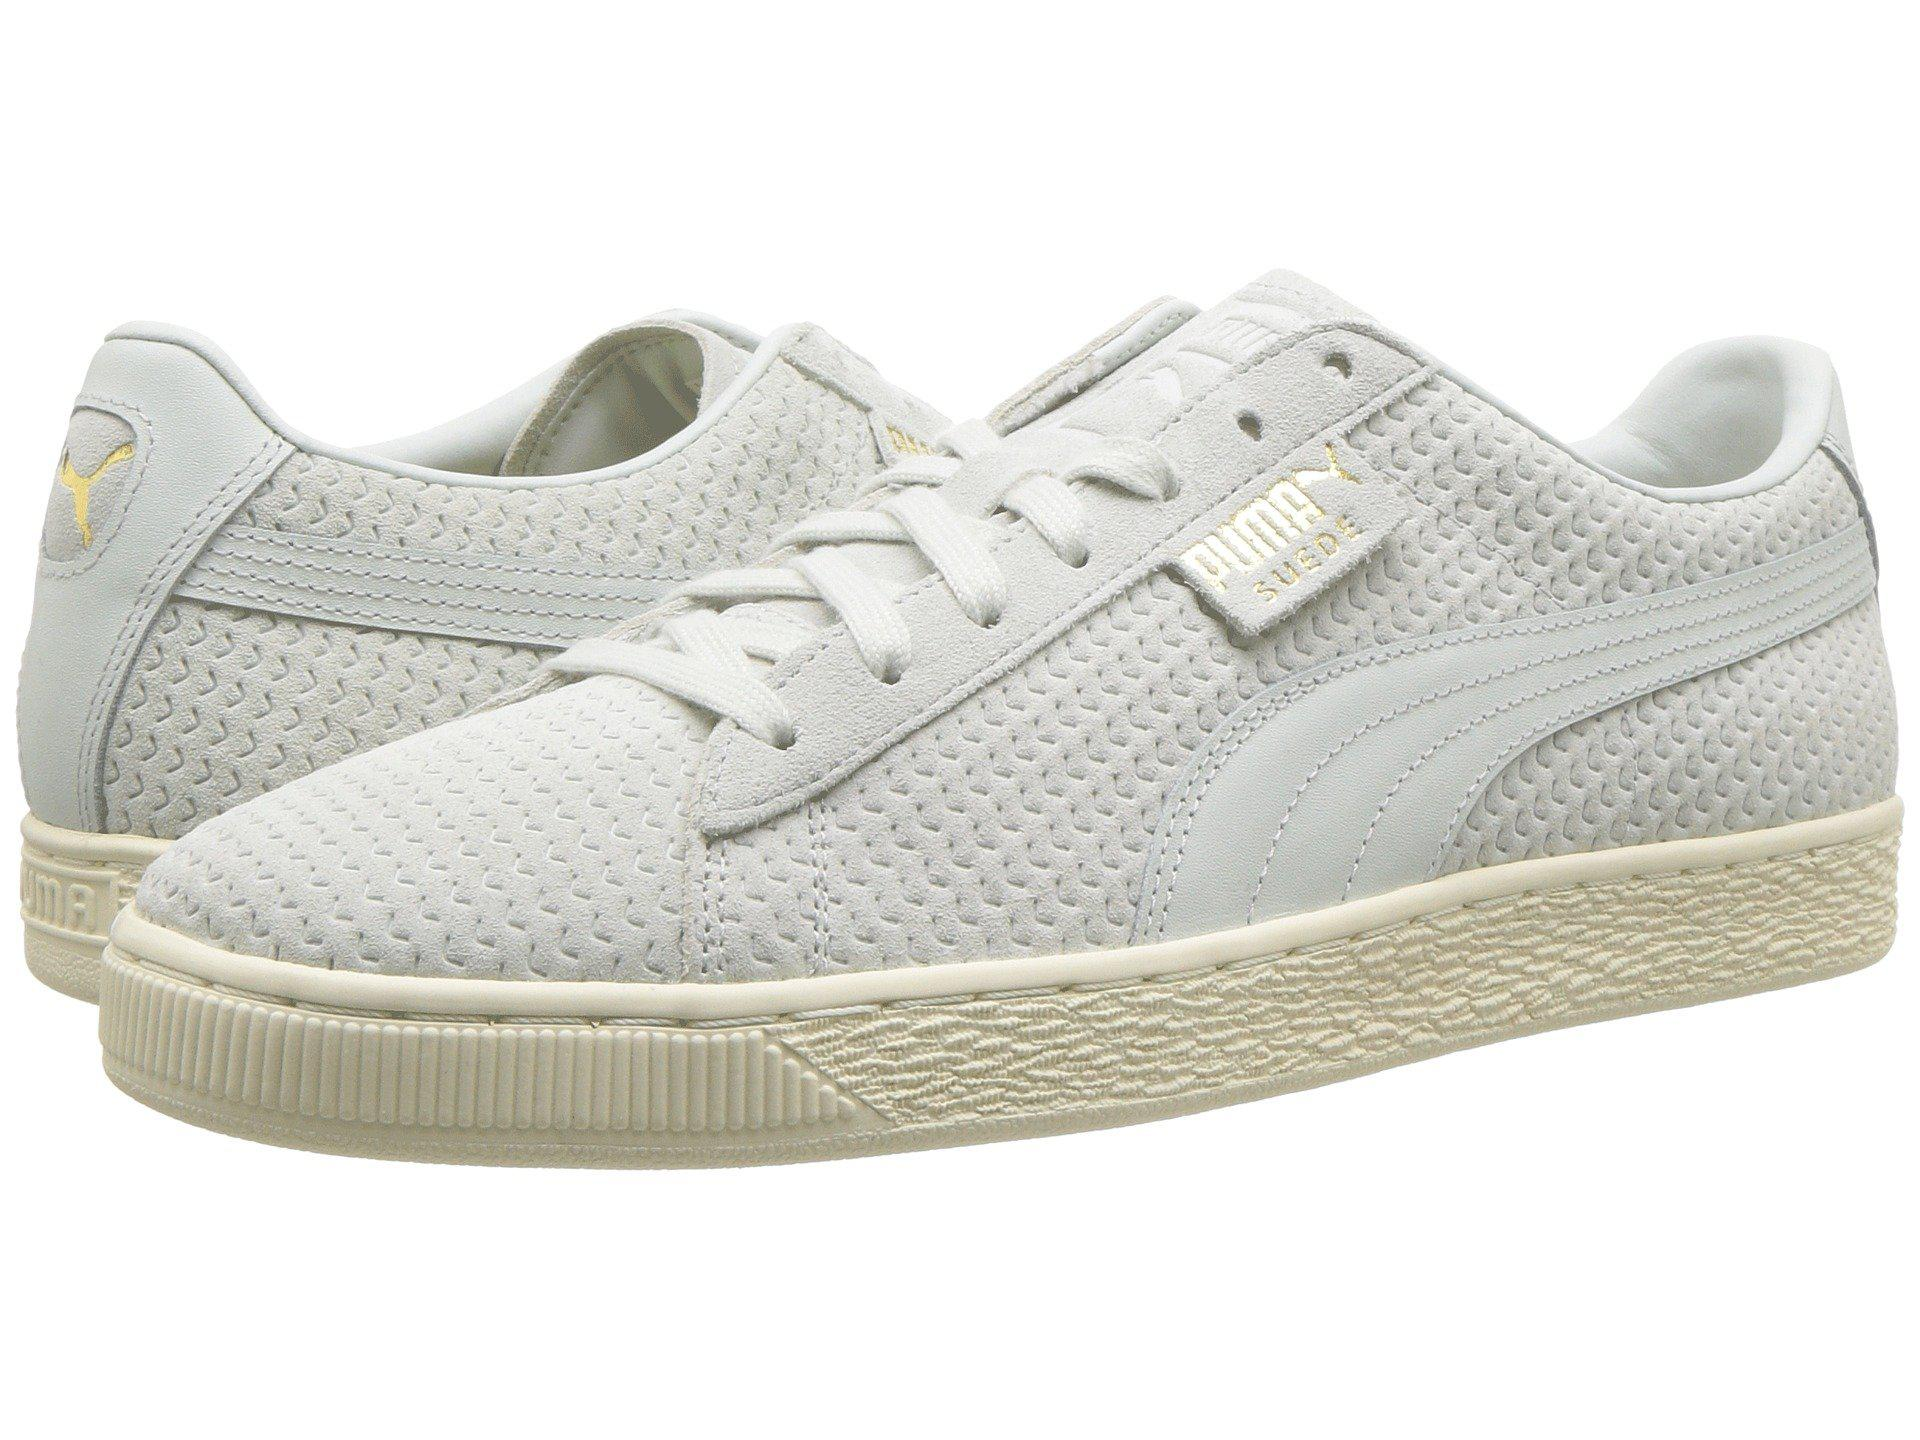 Lyst - PUMA Suede Classic Perforation for Men 7b16cda60